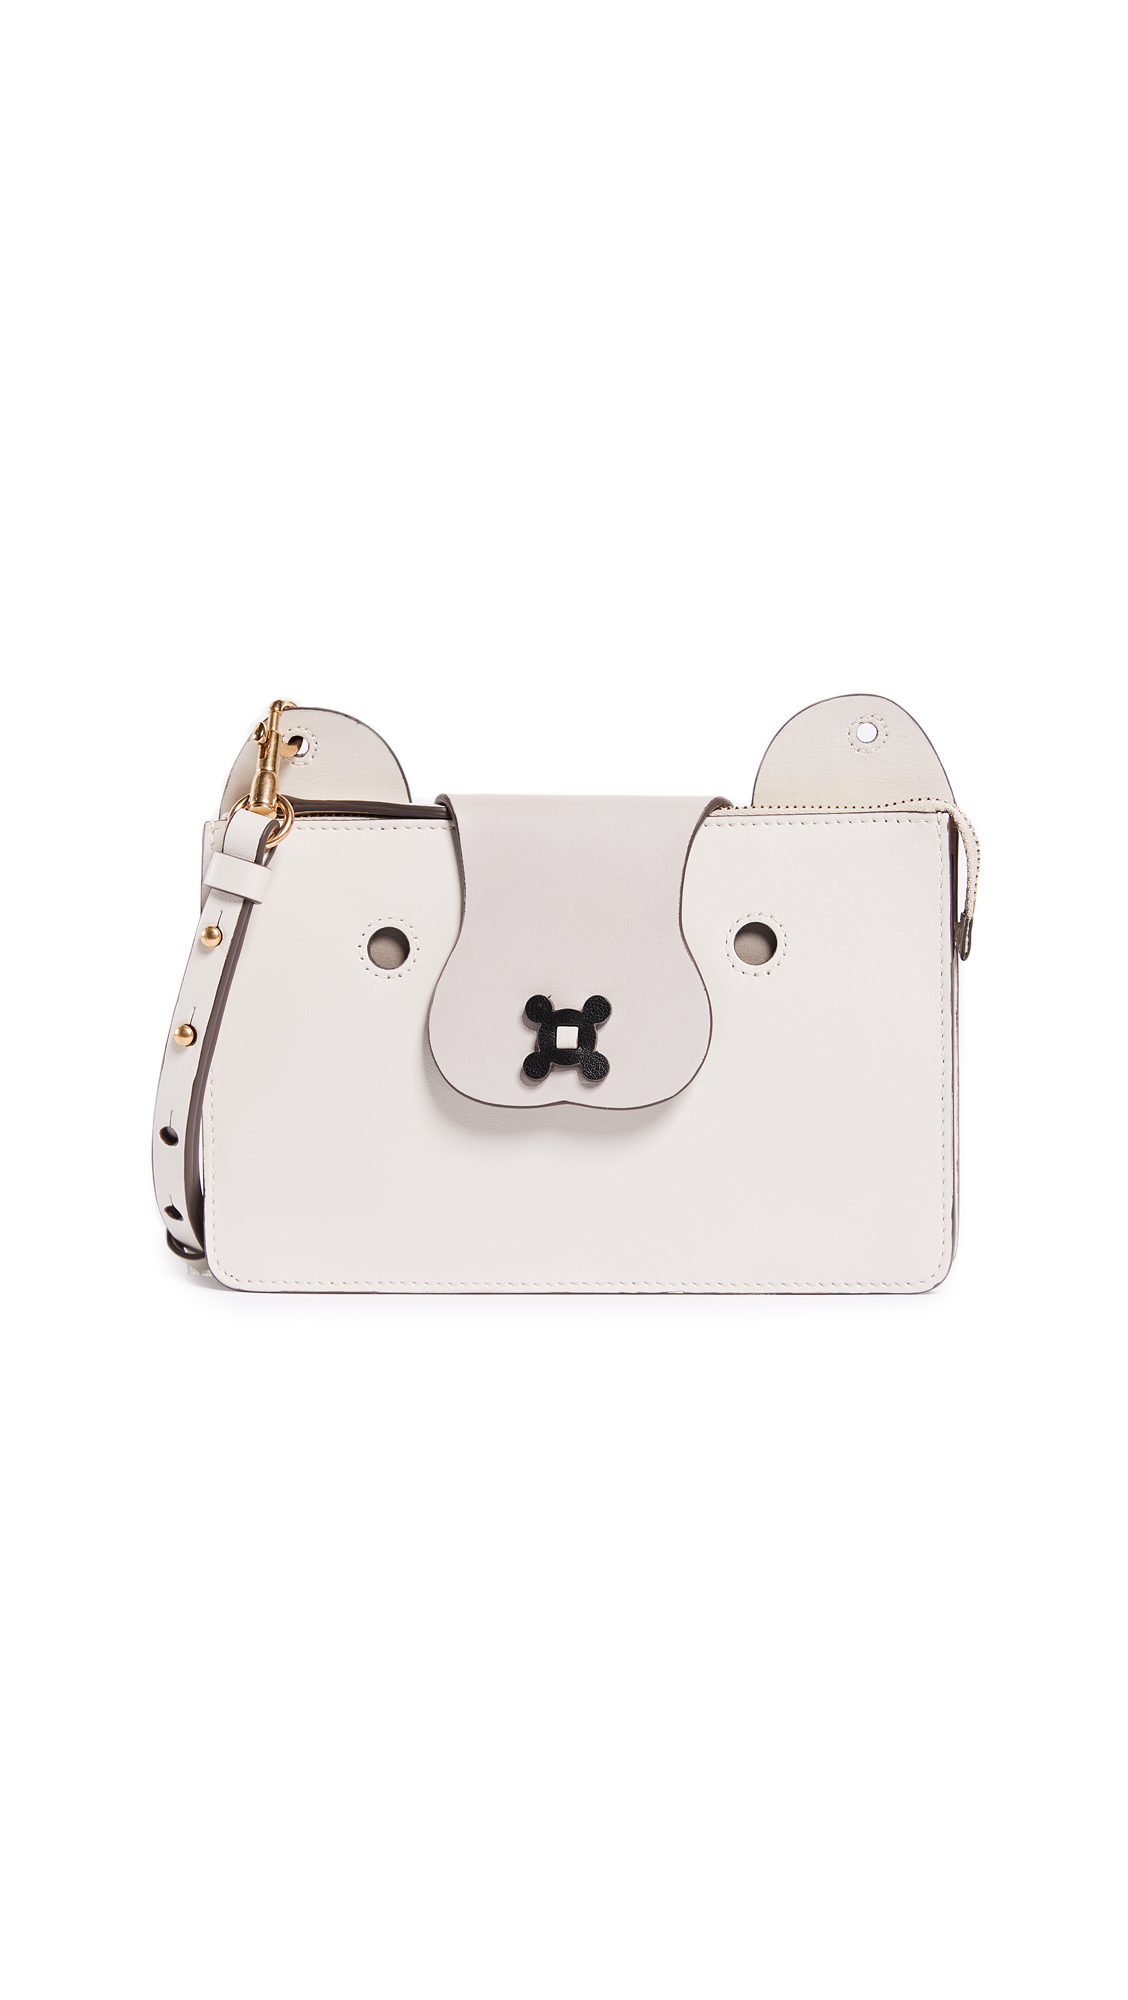 Anya Hindmarch Husky Cross Body Pouch - Porcini